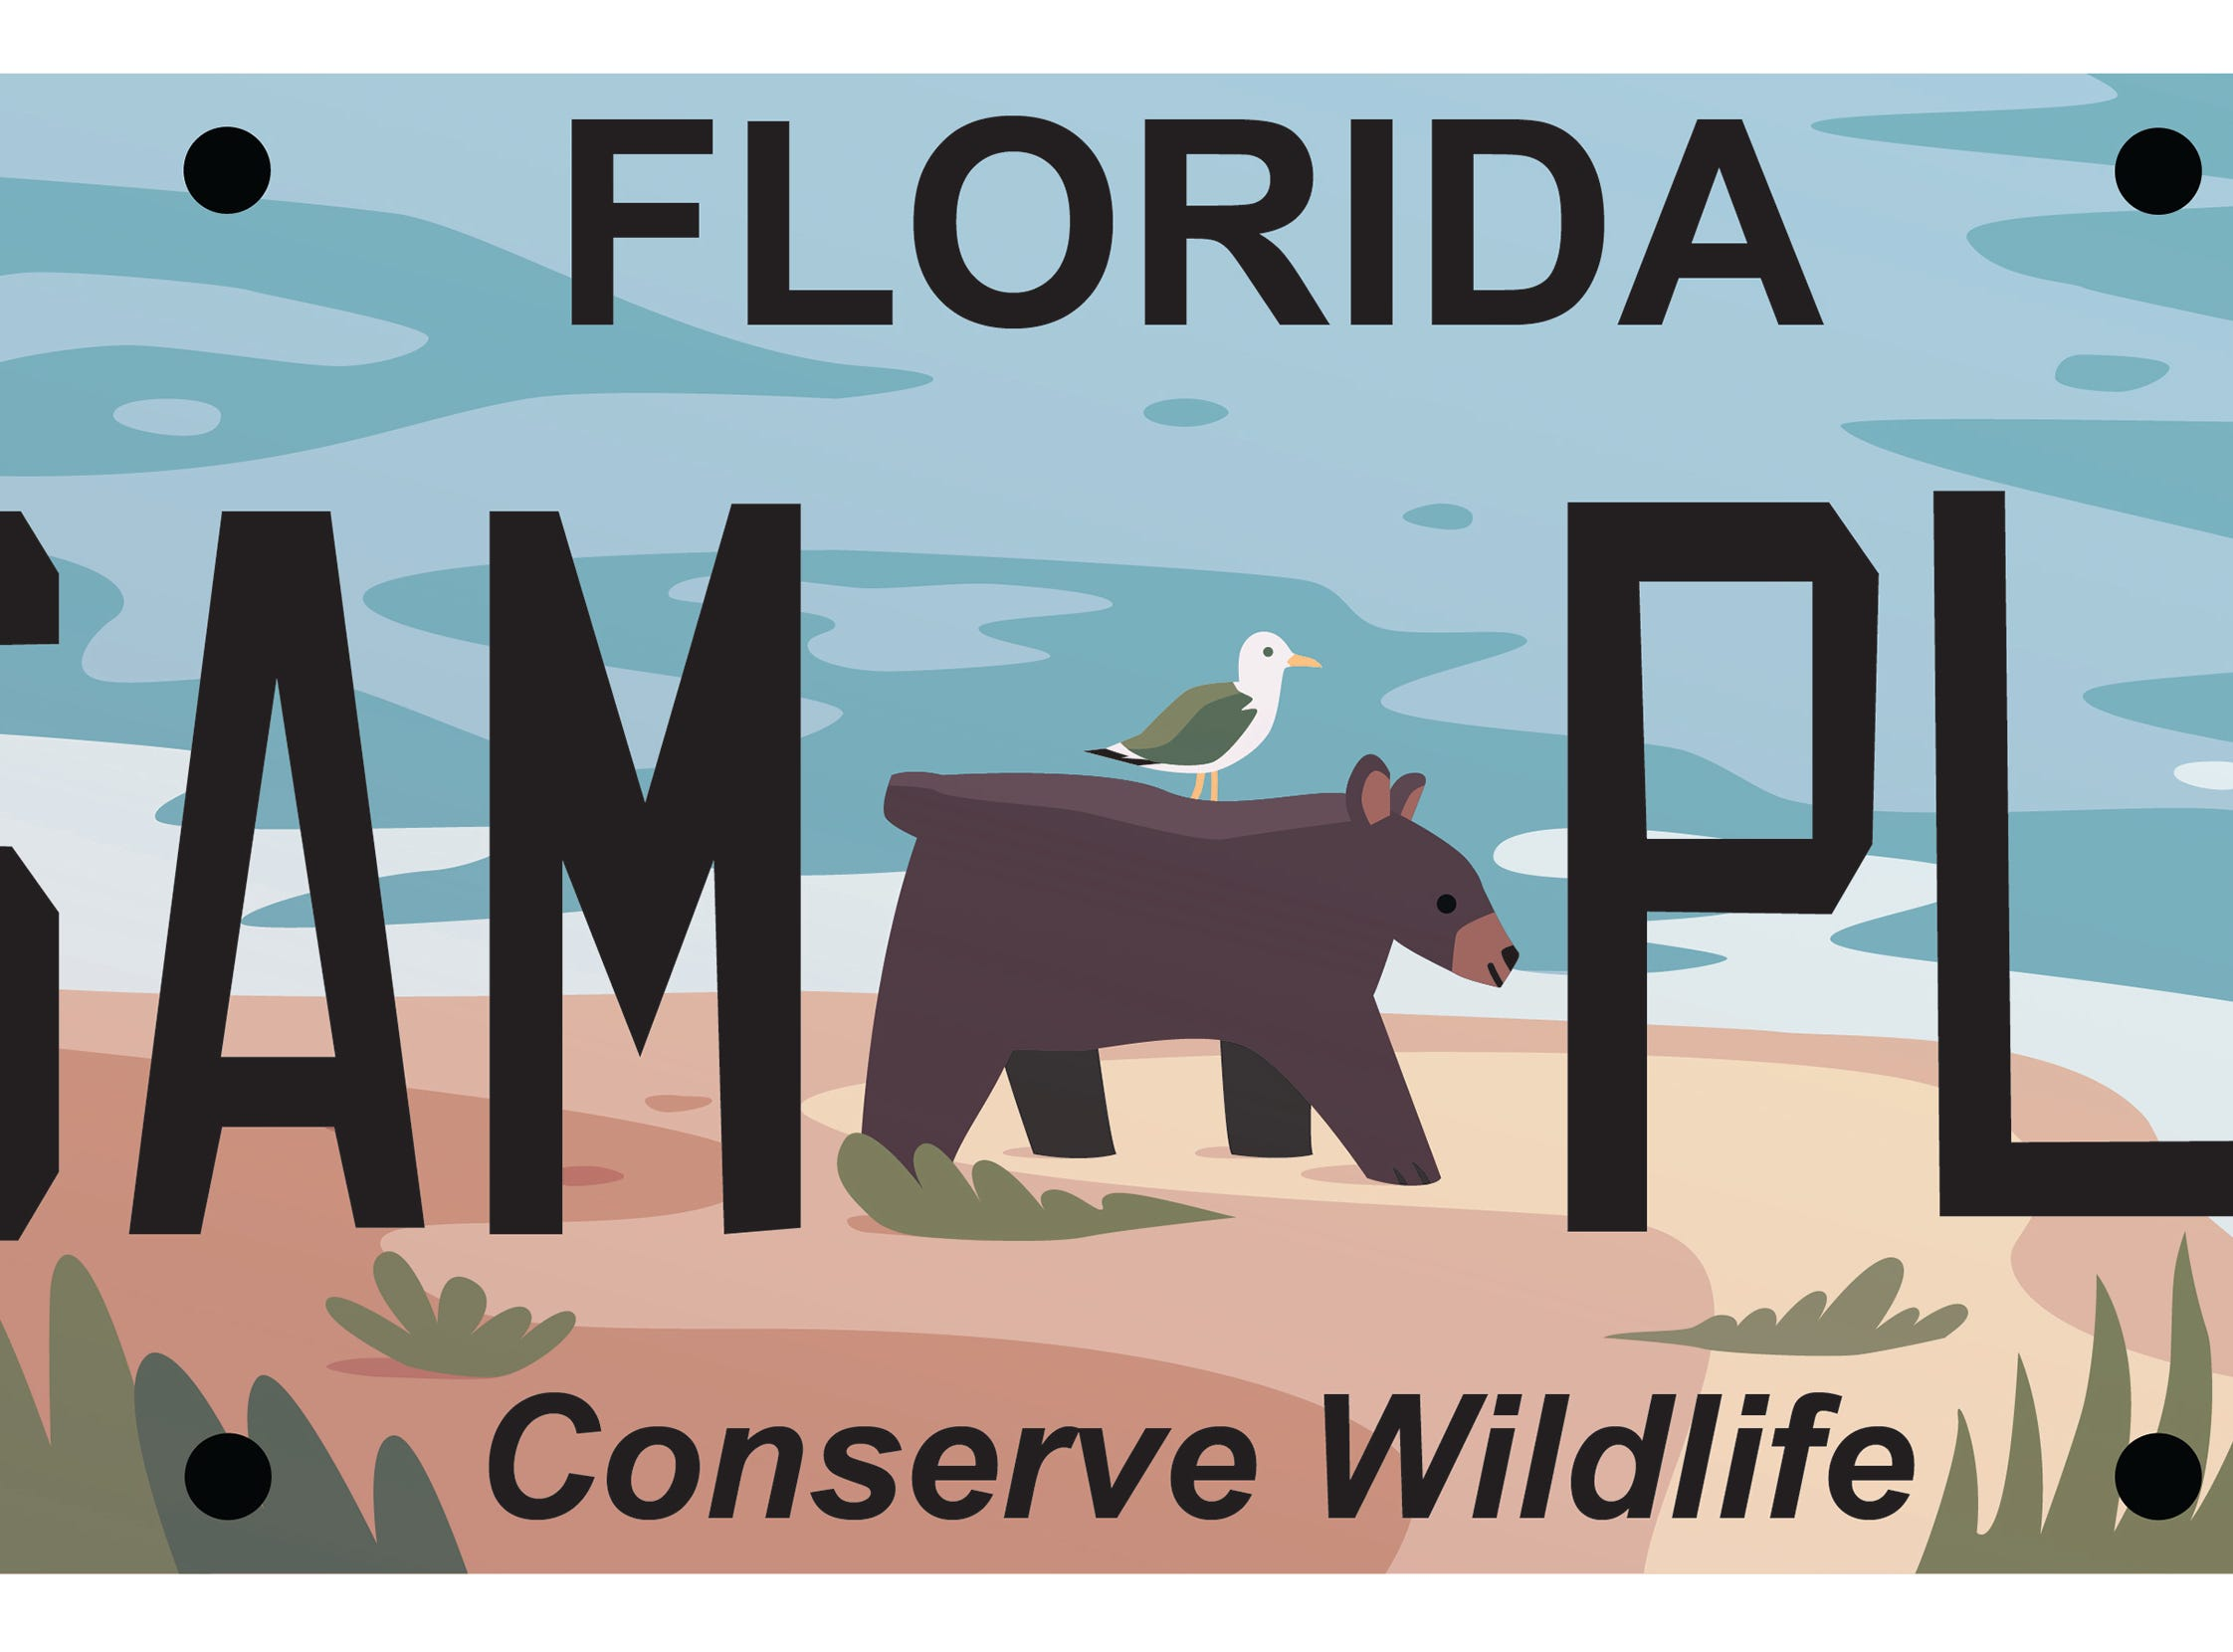 License plate design by Rachel Bivens.